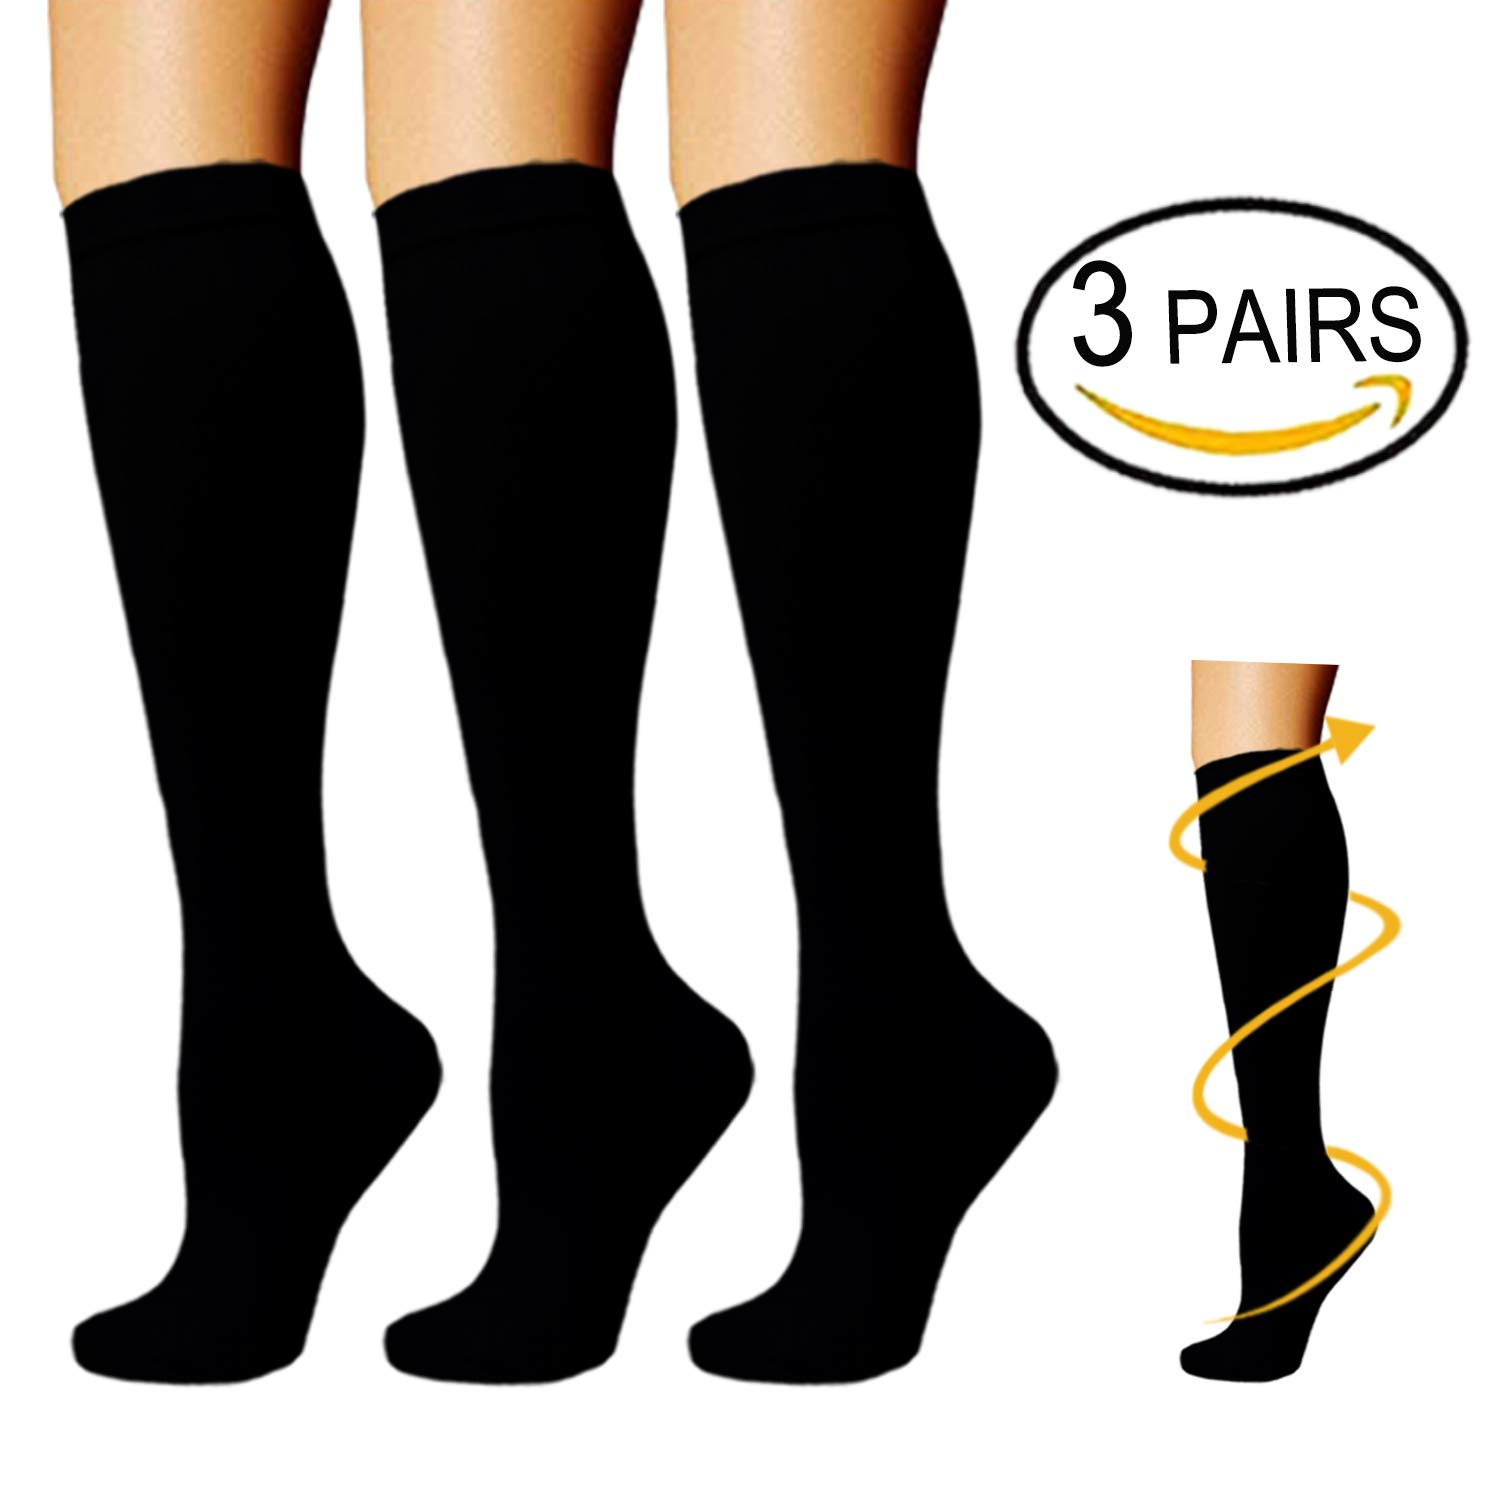 Compression Socks For Men & Women (3 Pairs) - BEST For Running,Pregnancy and Travel (Large/X-Large, 3 Pack - Black)